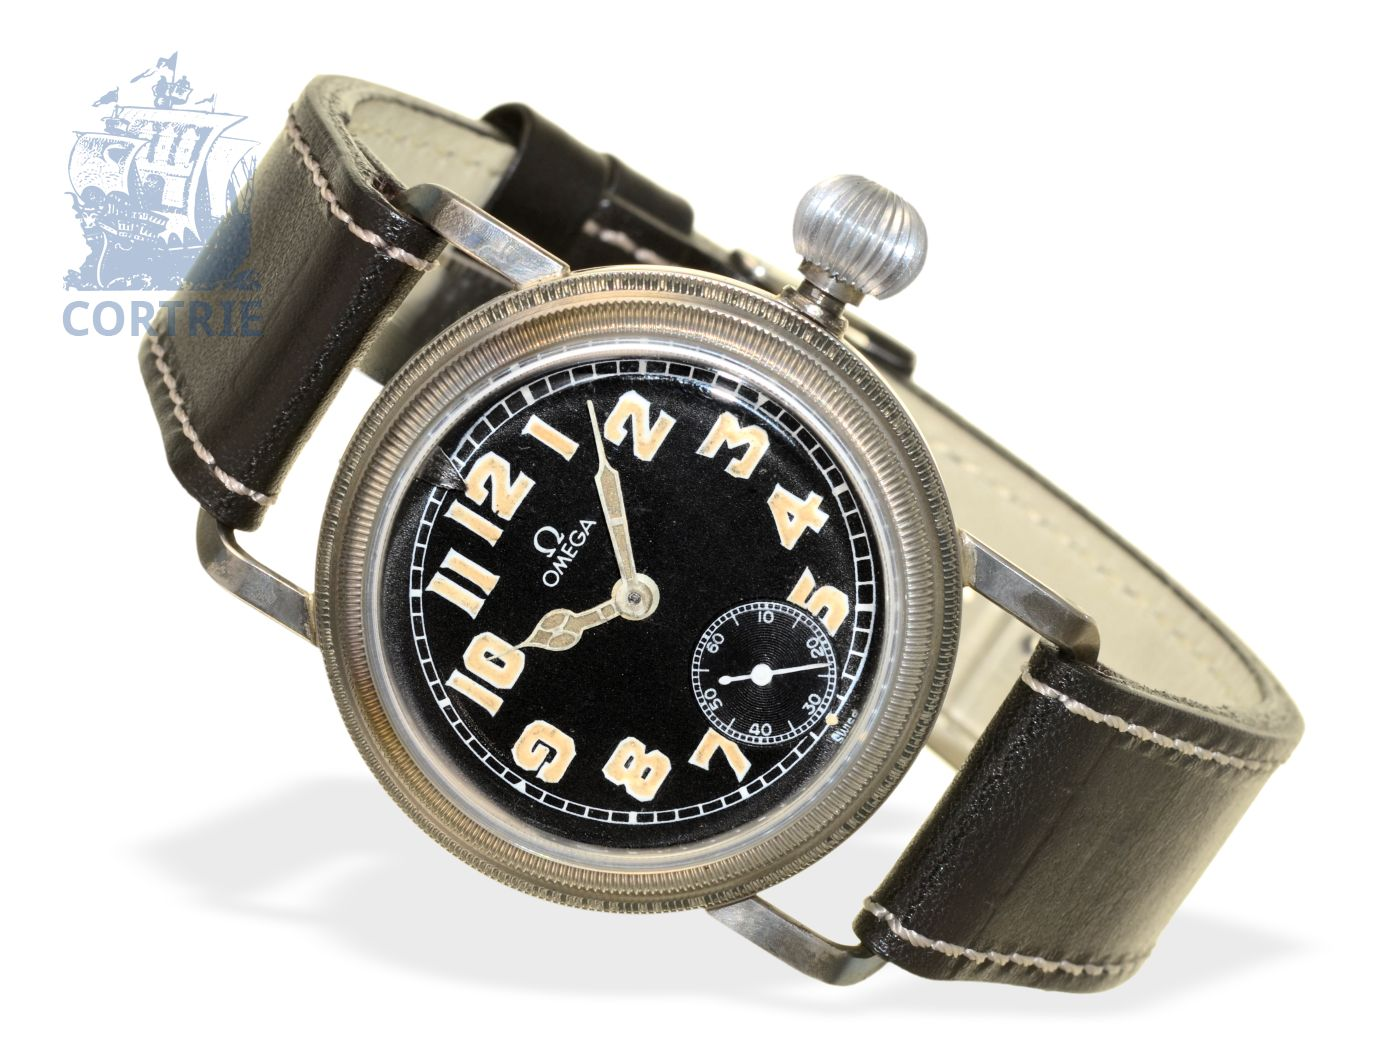 Wristwatch: extremely rare Omega pilot's watch ref. CK 700AD, ca. 1925-